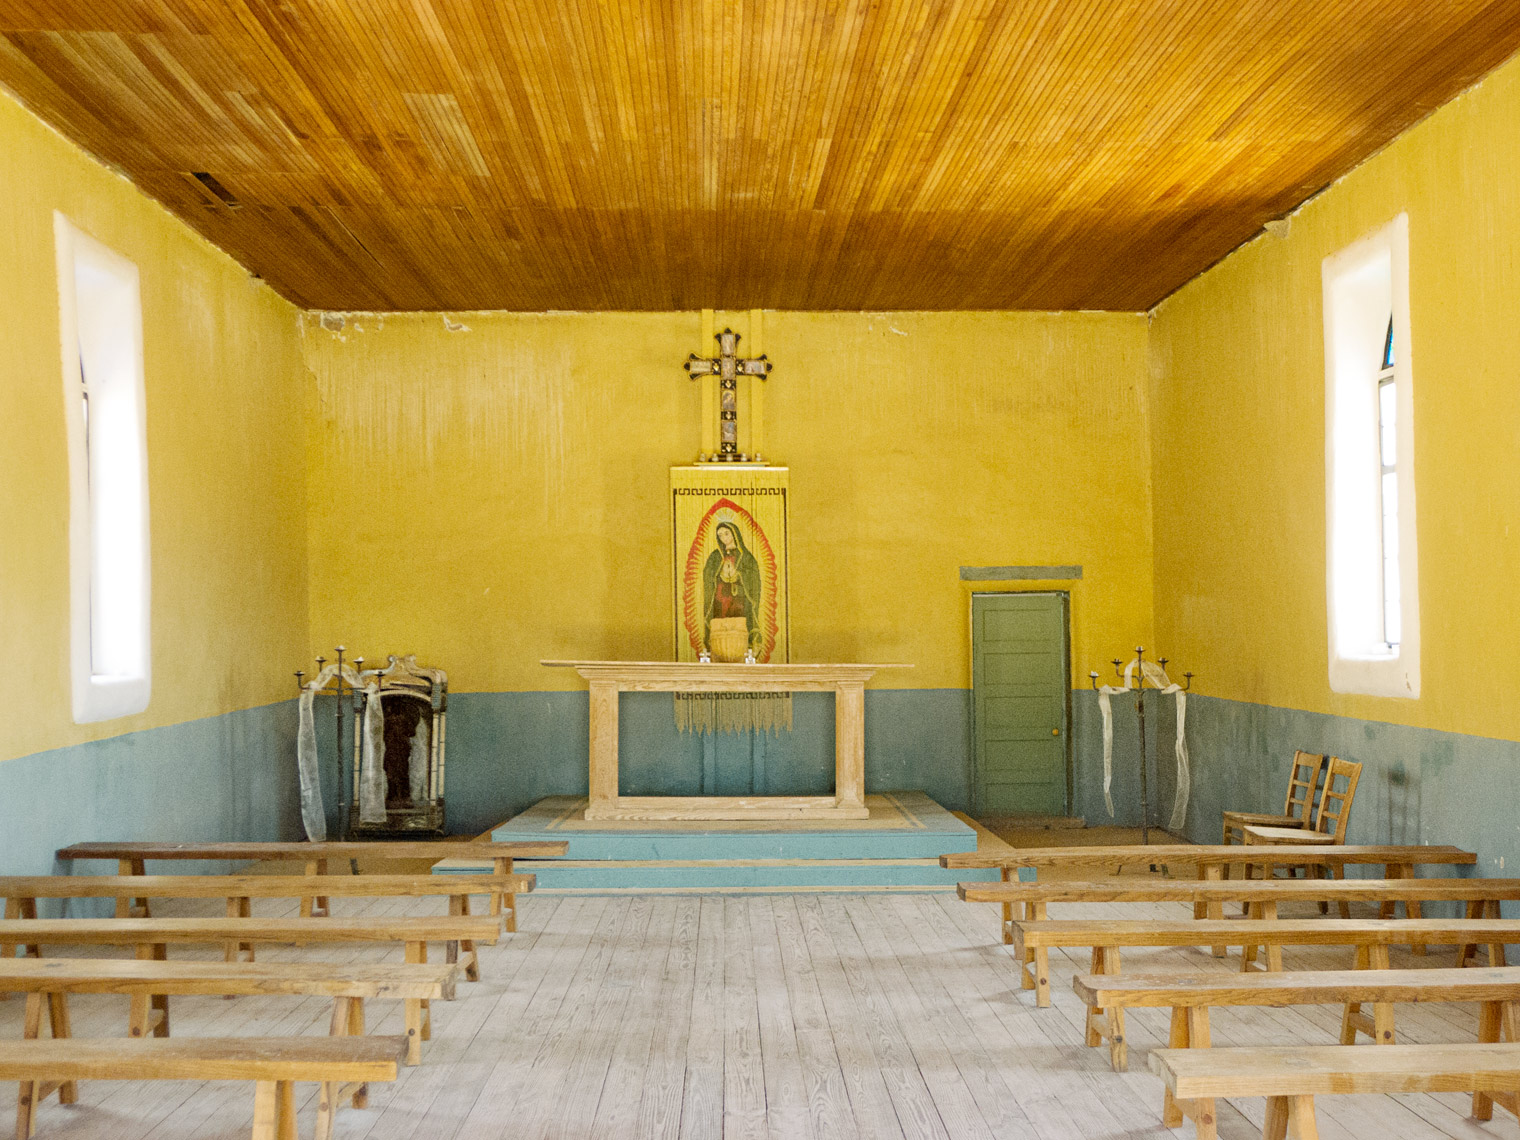 St. Agnes church in Terlingua Texas Big Bend